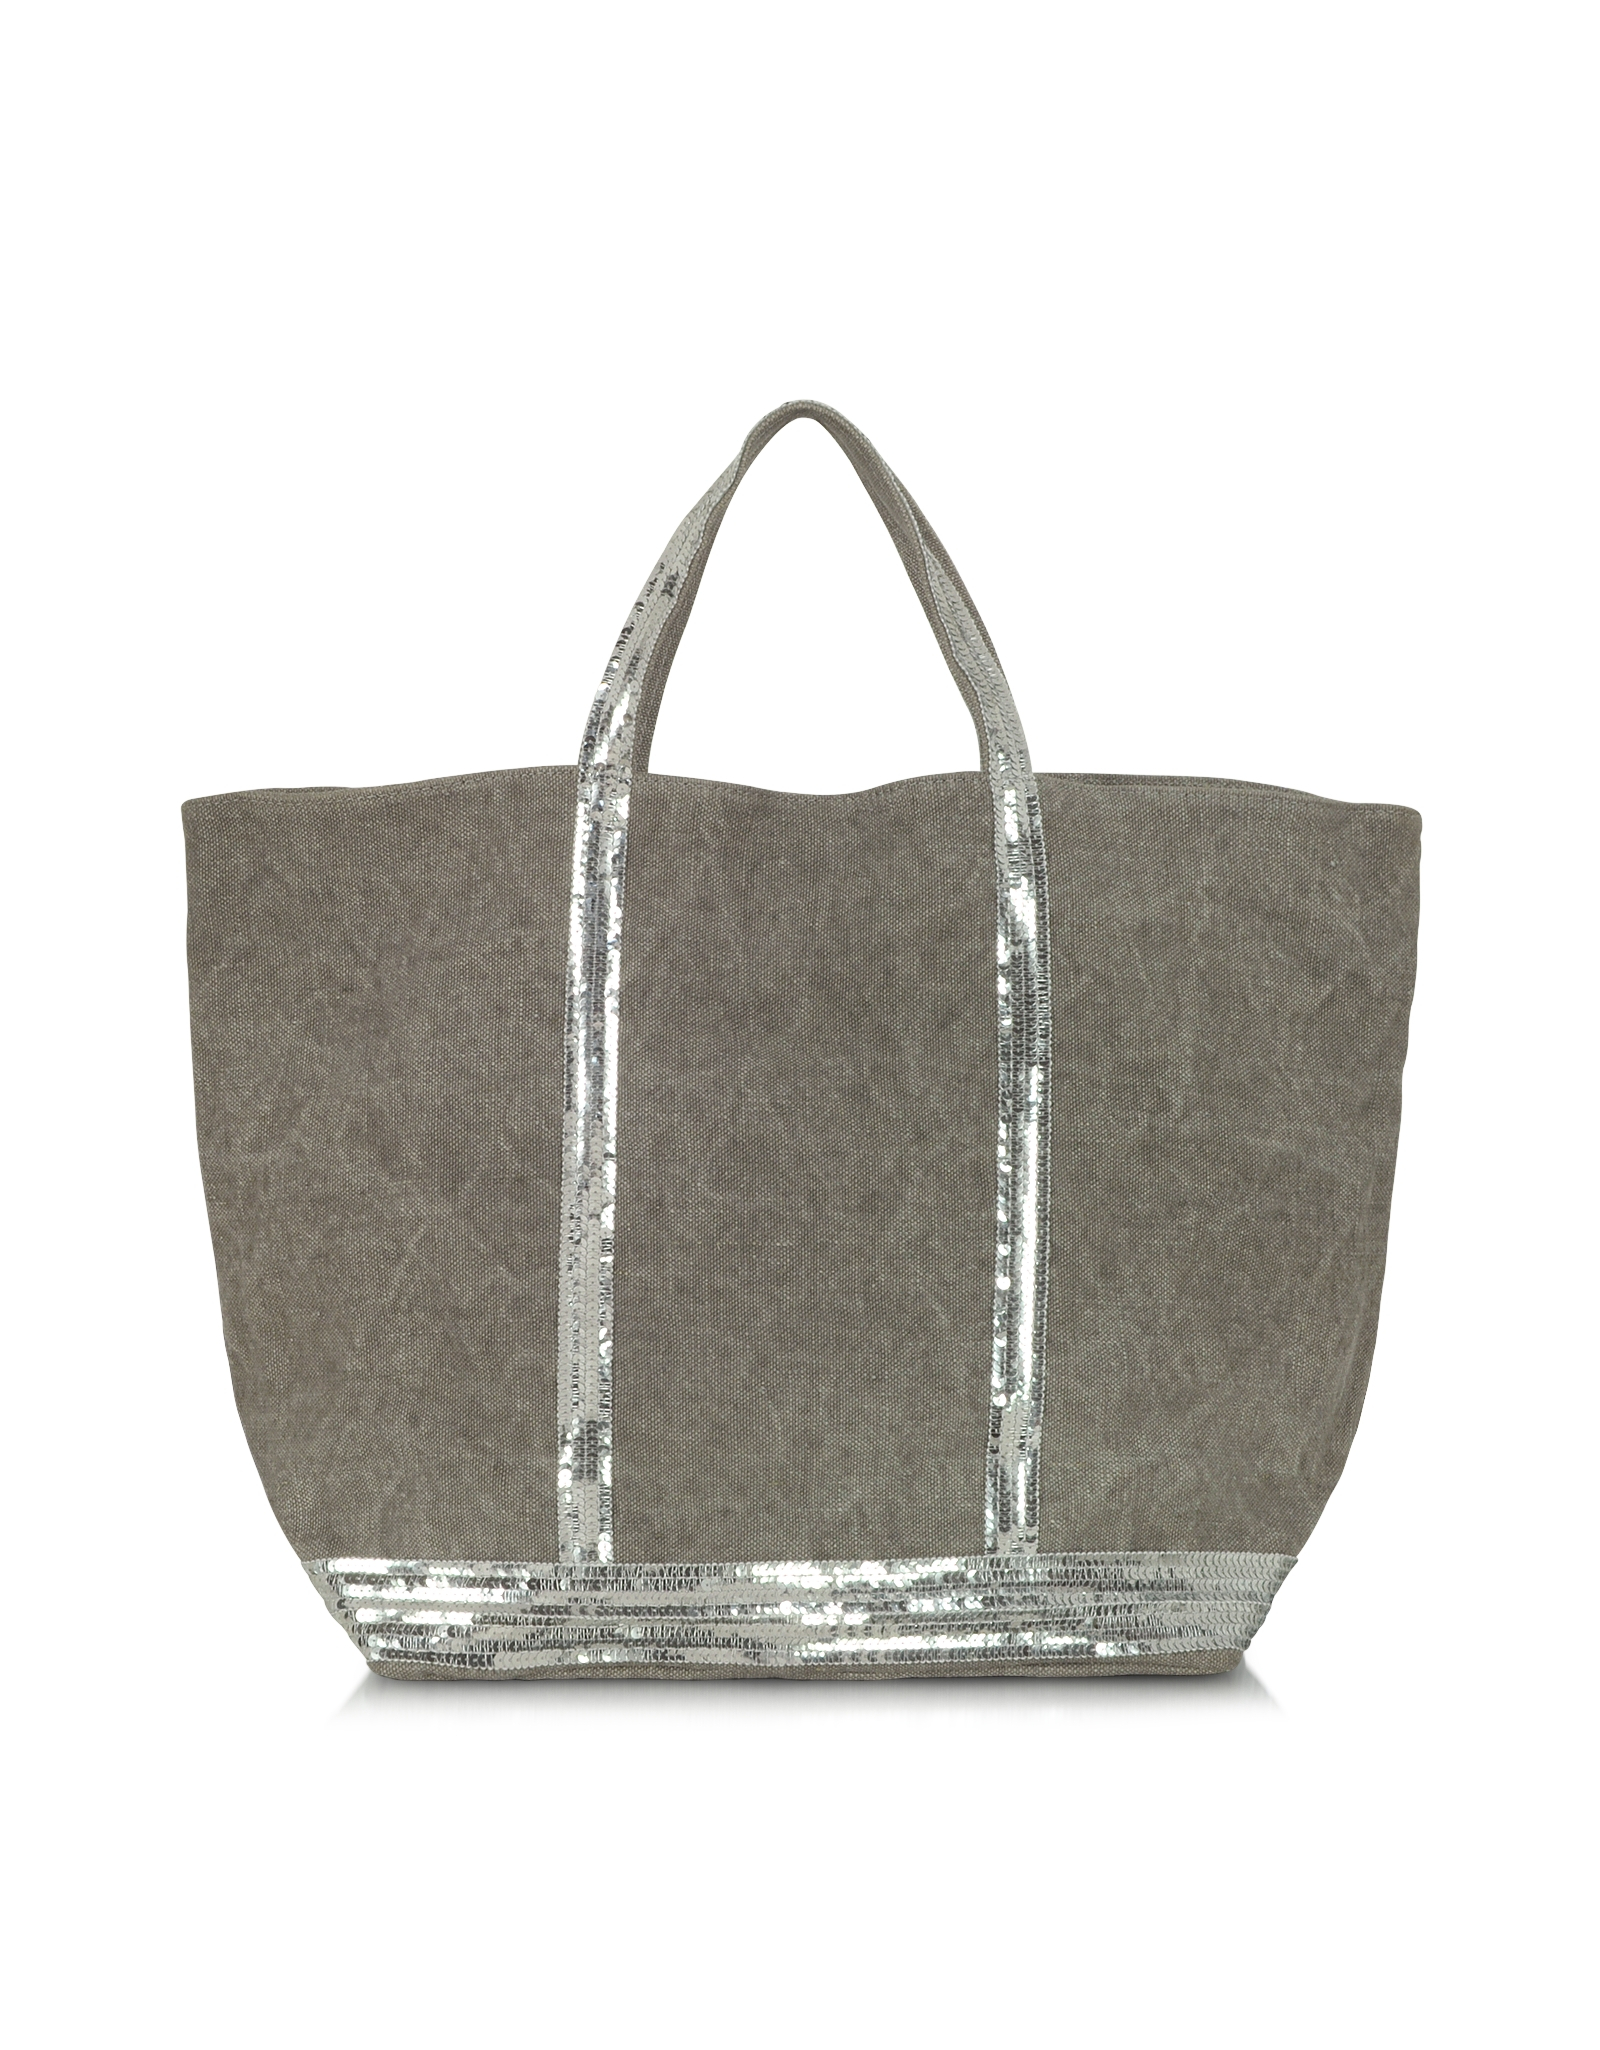 Favori Vanessa bruno Les Cabas Large Linen And Sequins Tote in Gray | Lyst CU29